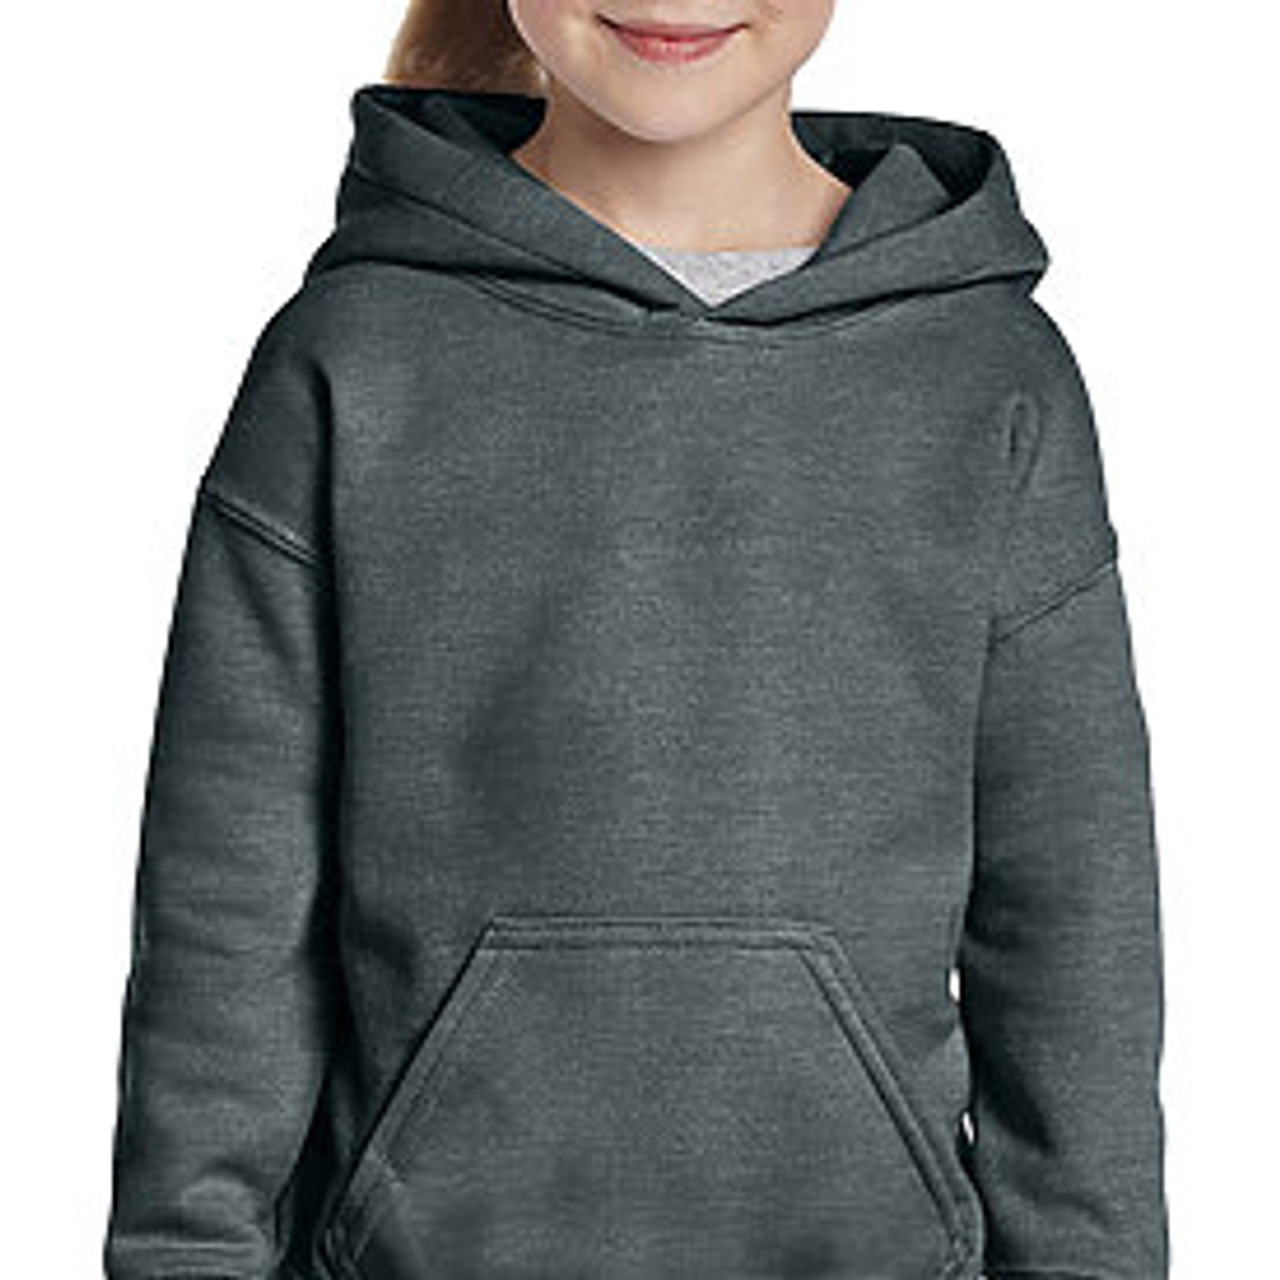 Gildan Youth Heavyweight Blend Hooded Sweatshirt in Sport Grey X-Large 18//20